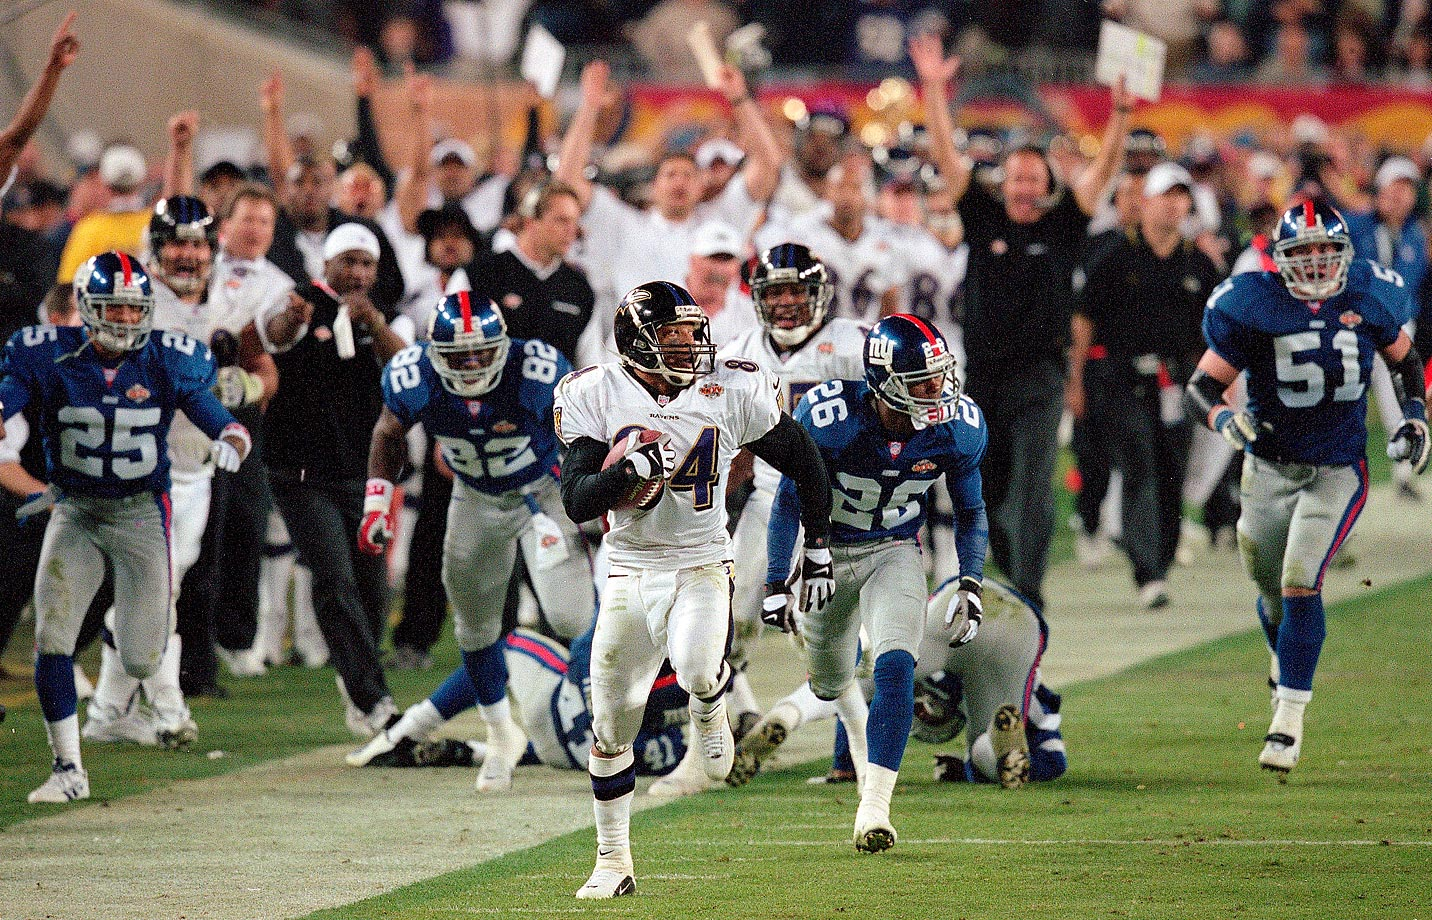 Baltimore's Jermaine Lewis returns a kickoff for a touchdown against the New York Giants in Super Bowl XXXV in January 2001.